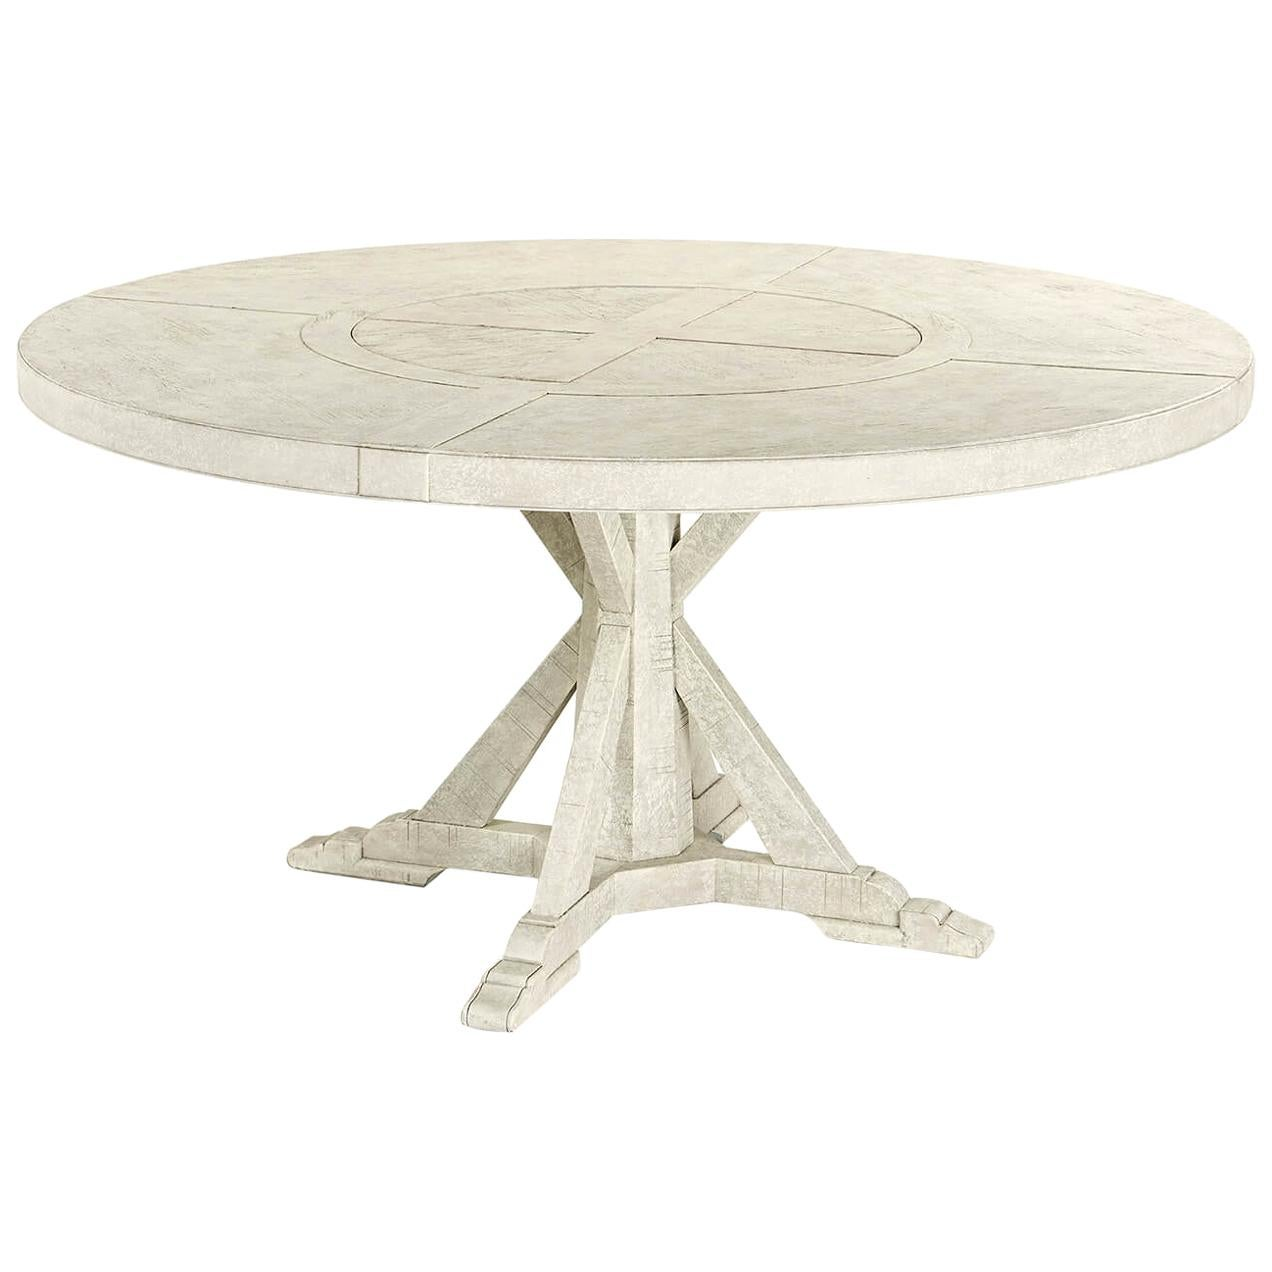 Rustic Round Dining Table, Whitewash